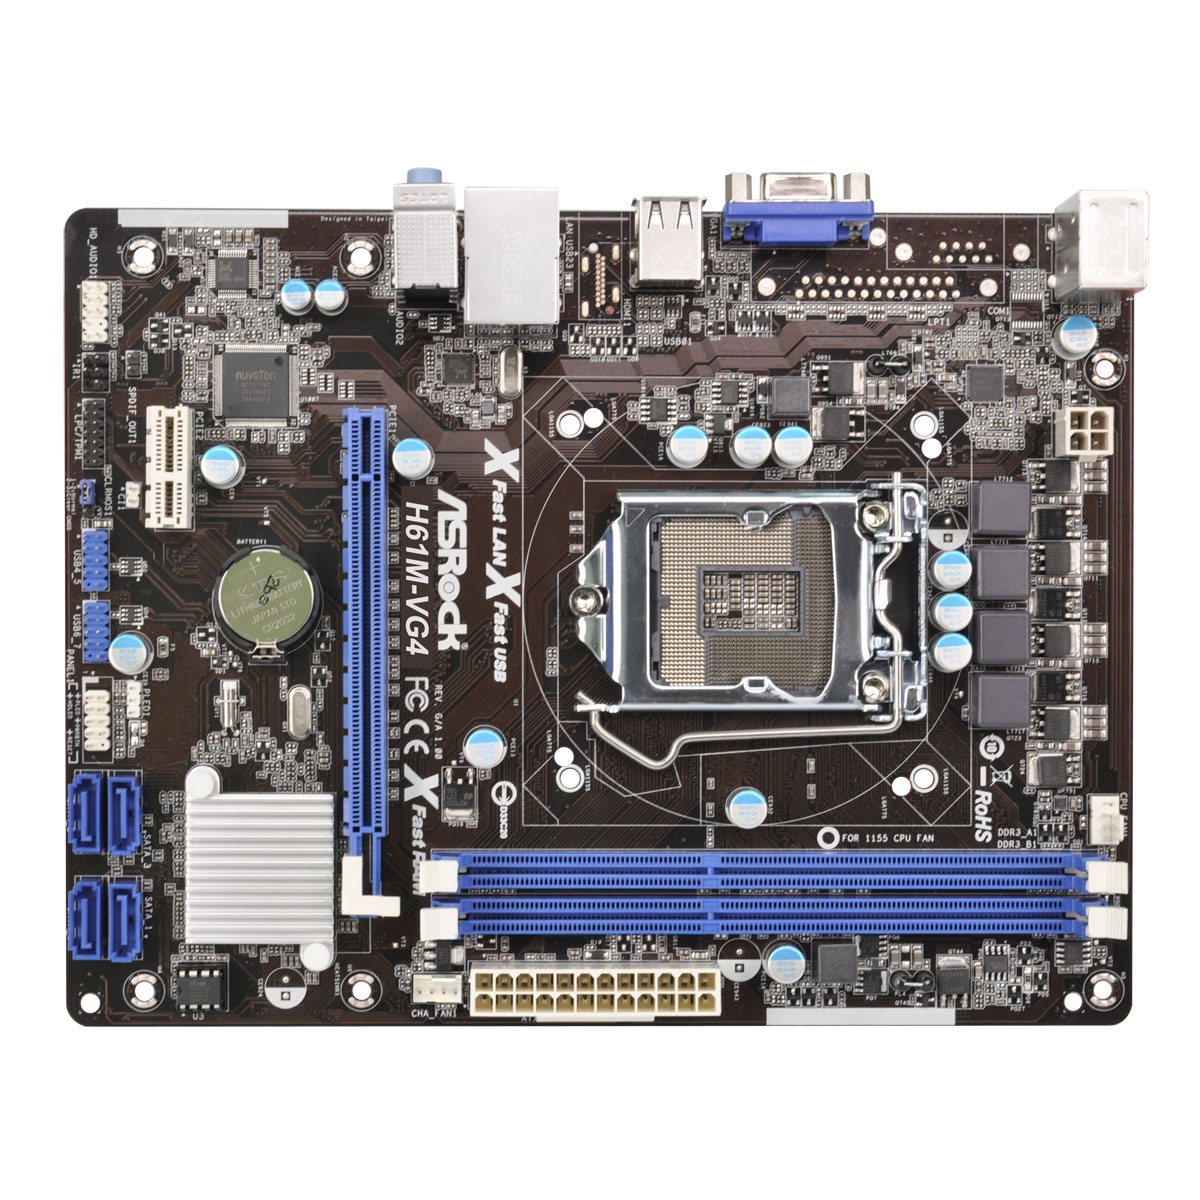 ASRock H61M-VG4 Intel Graphics Drivers for Windows 7